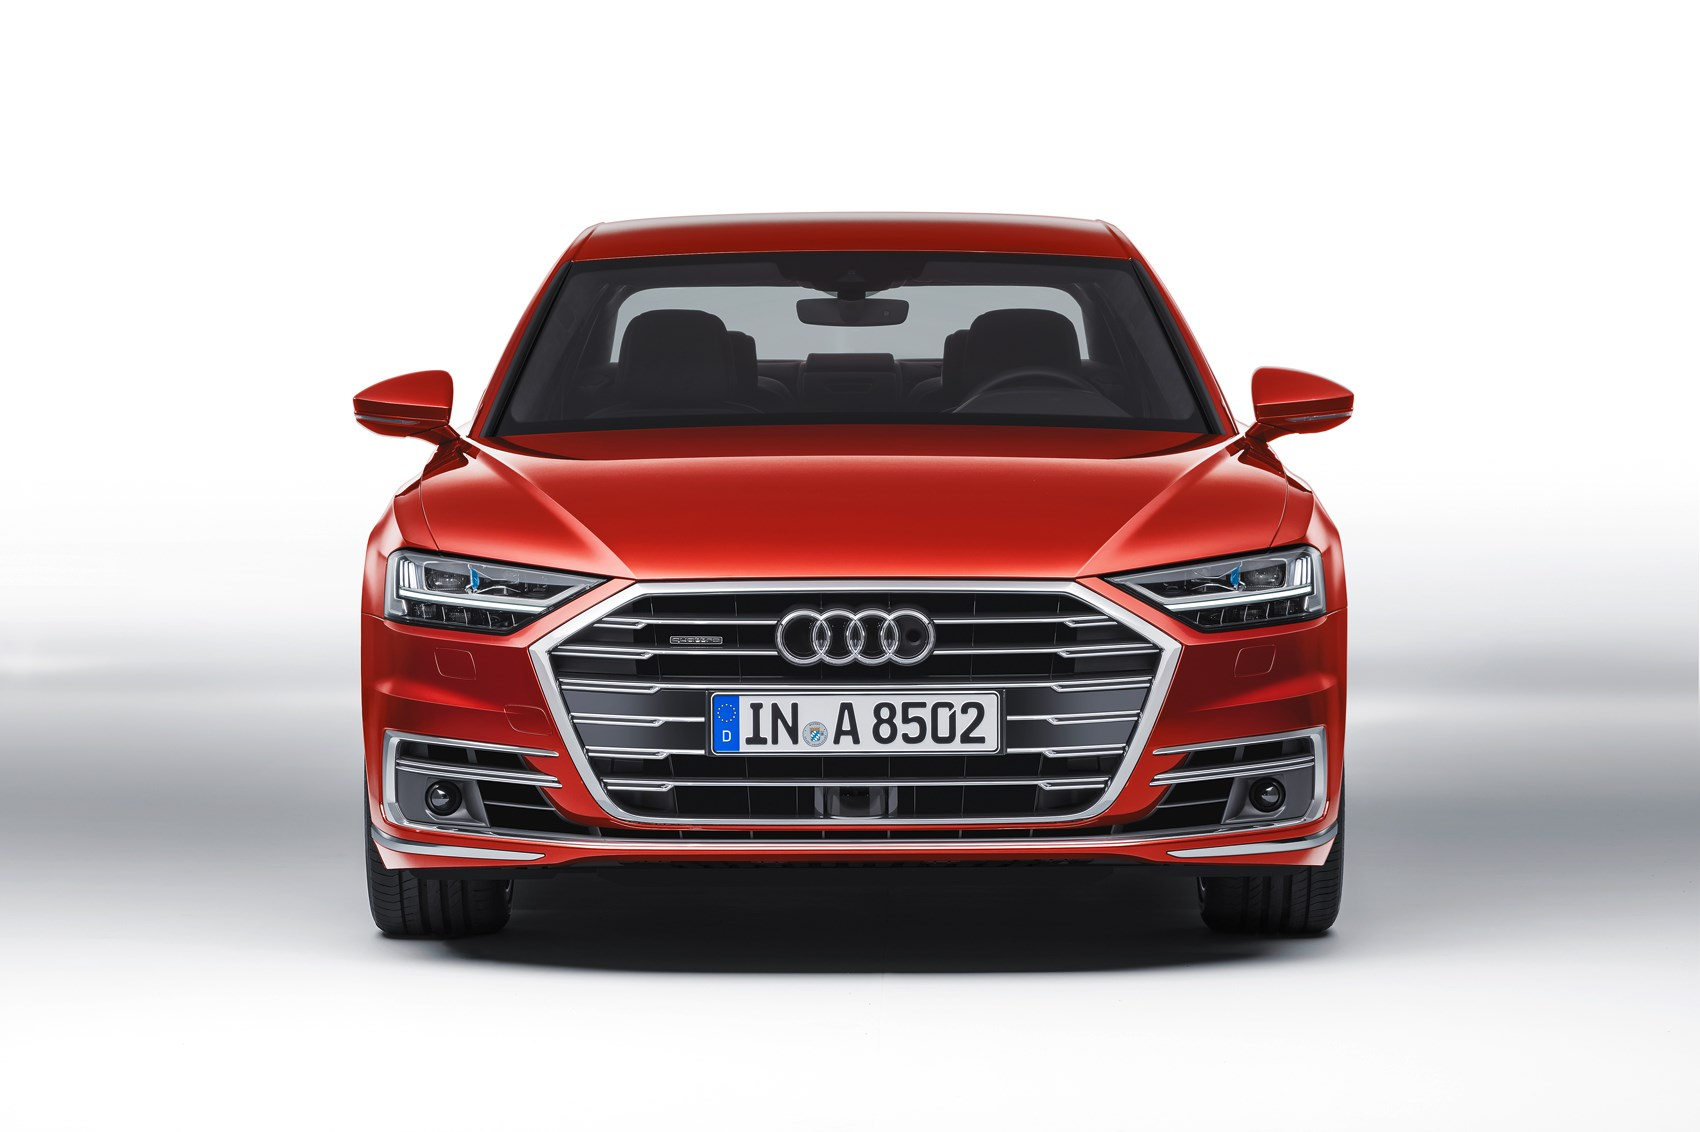 New 2017 Audi A8 officially revealed: all you need to know by CAR Magazine